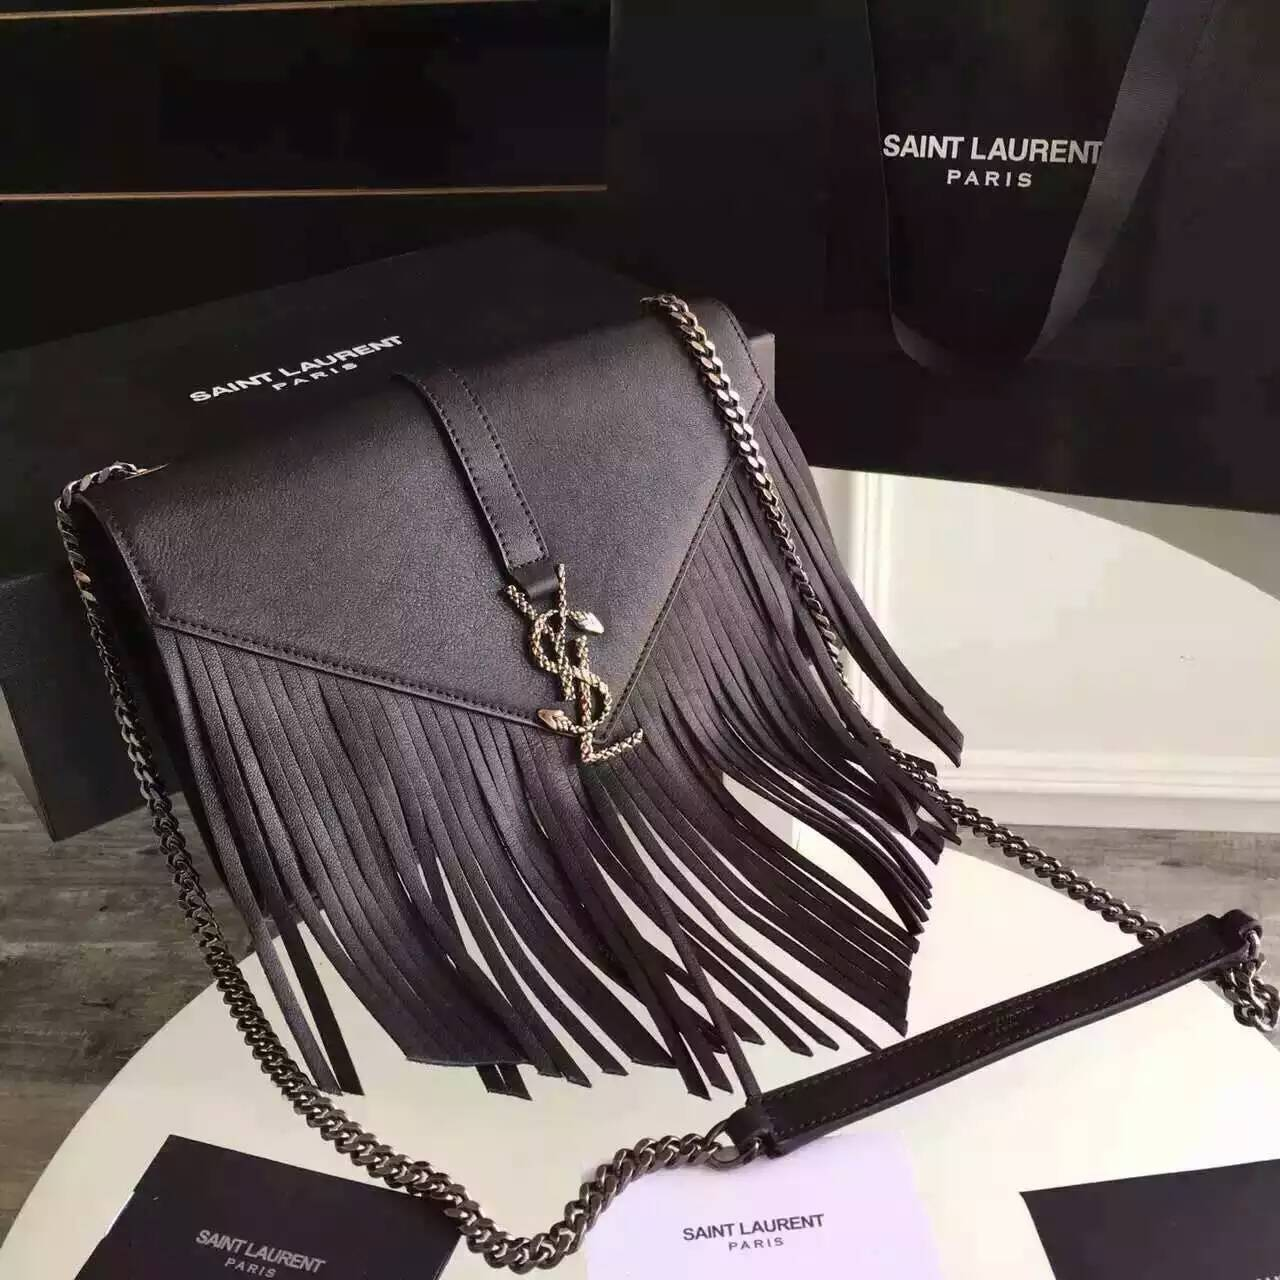 Limited Edition!2016 New Saint Laurent Bag Cheap Sale- Saint Laurent Monogram Fringed Satchel in Black Calfskin Leather